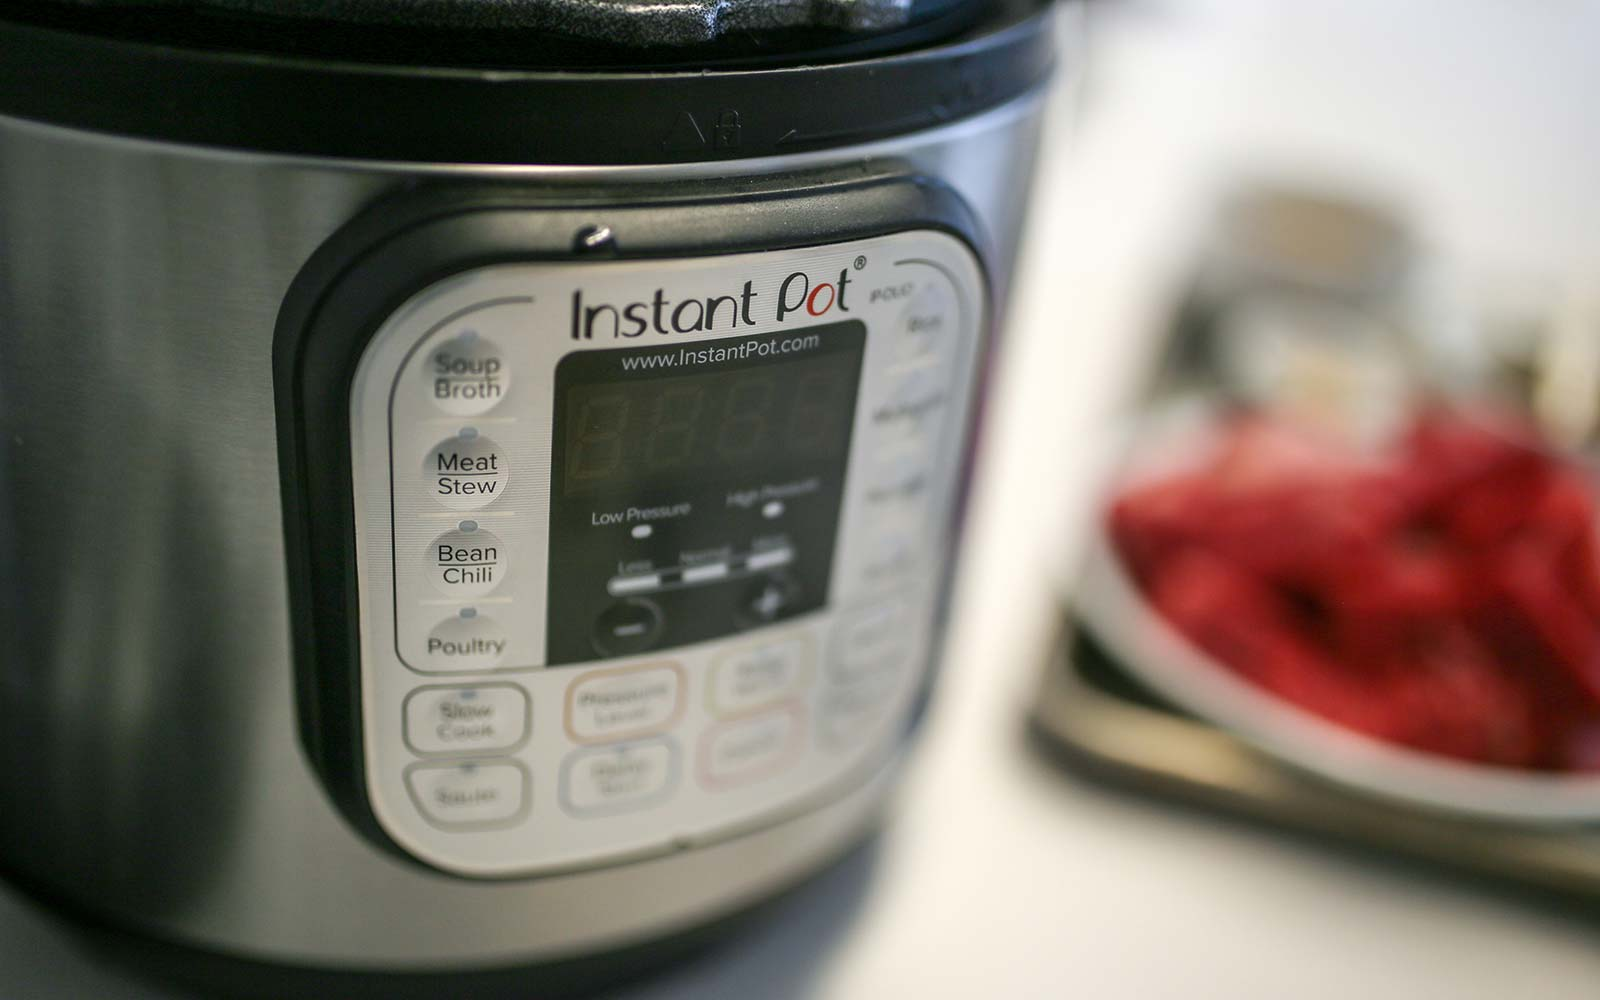 9 Things You Should Know Before You Use an Instant Pot